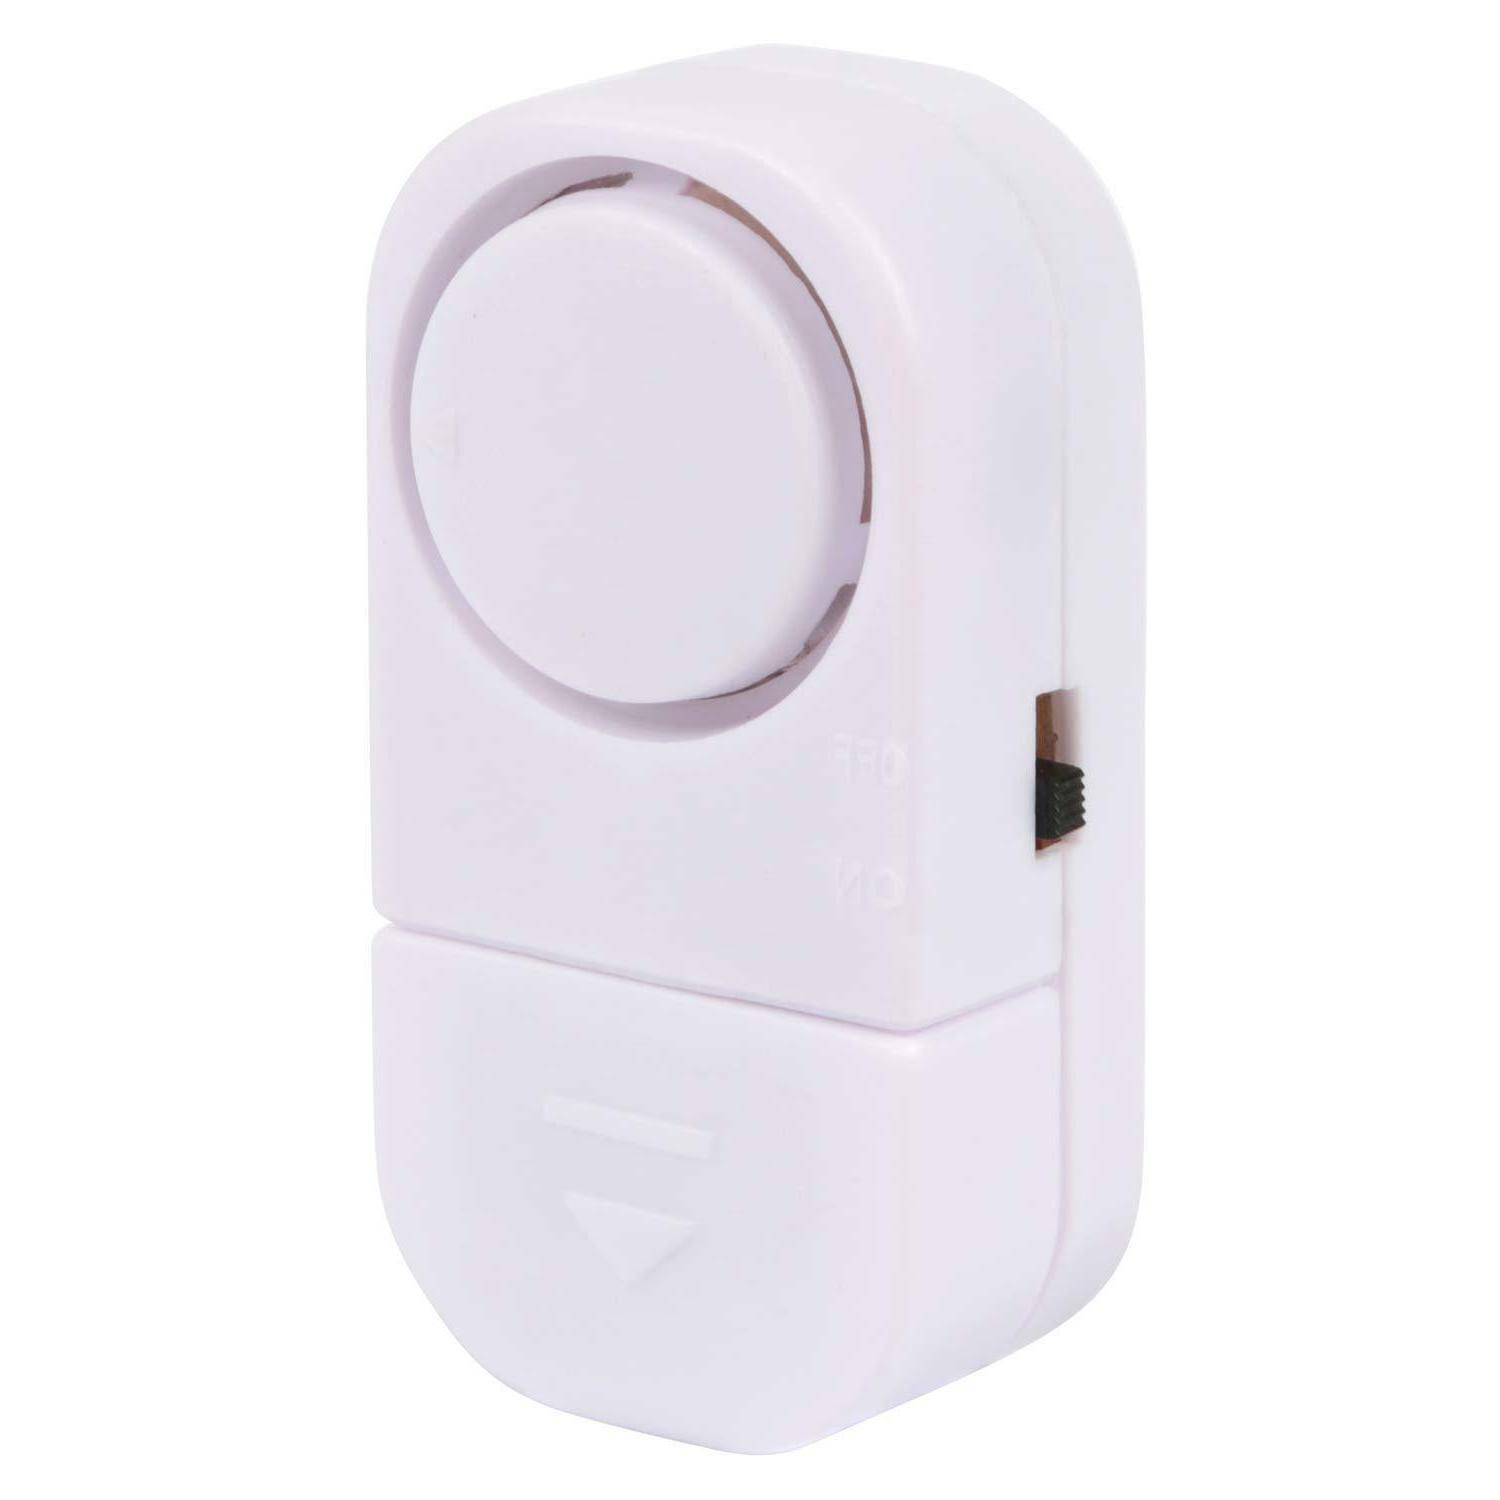 2-10 WIRELESS AND ENTRY BATTERY HOME SYSTEM SWITCH